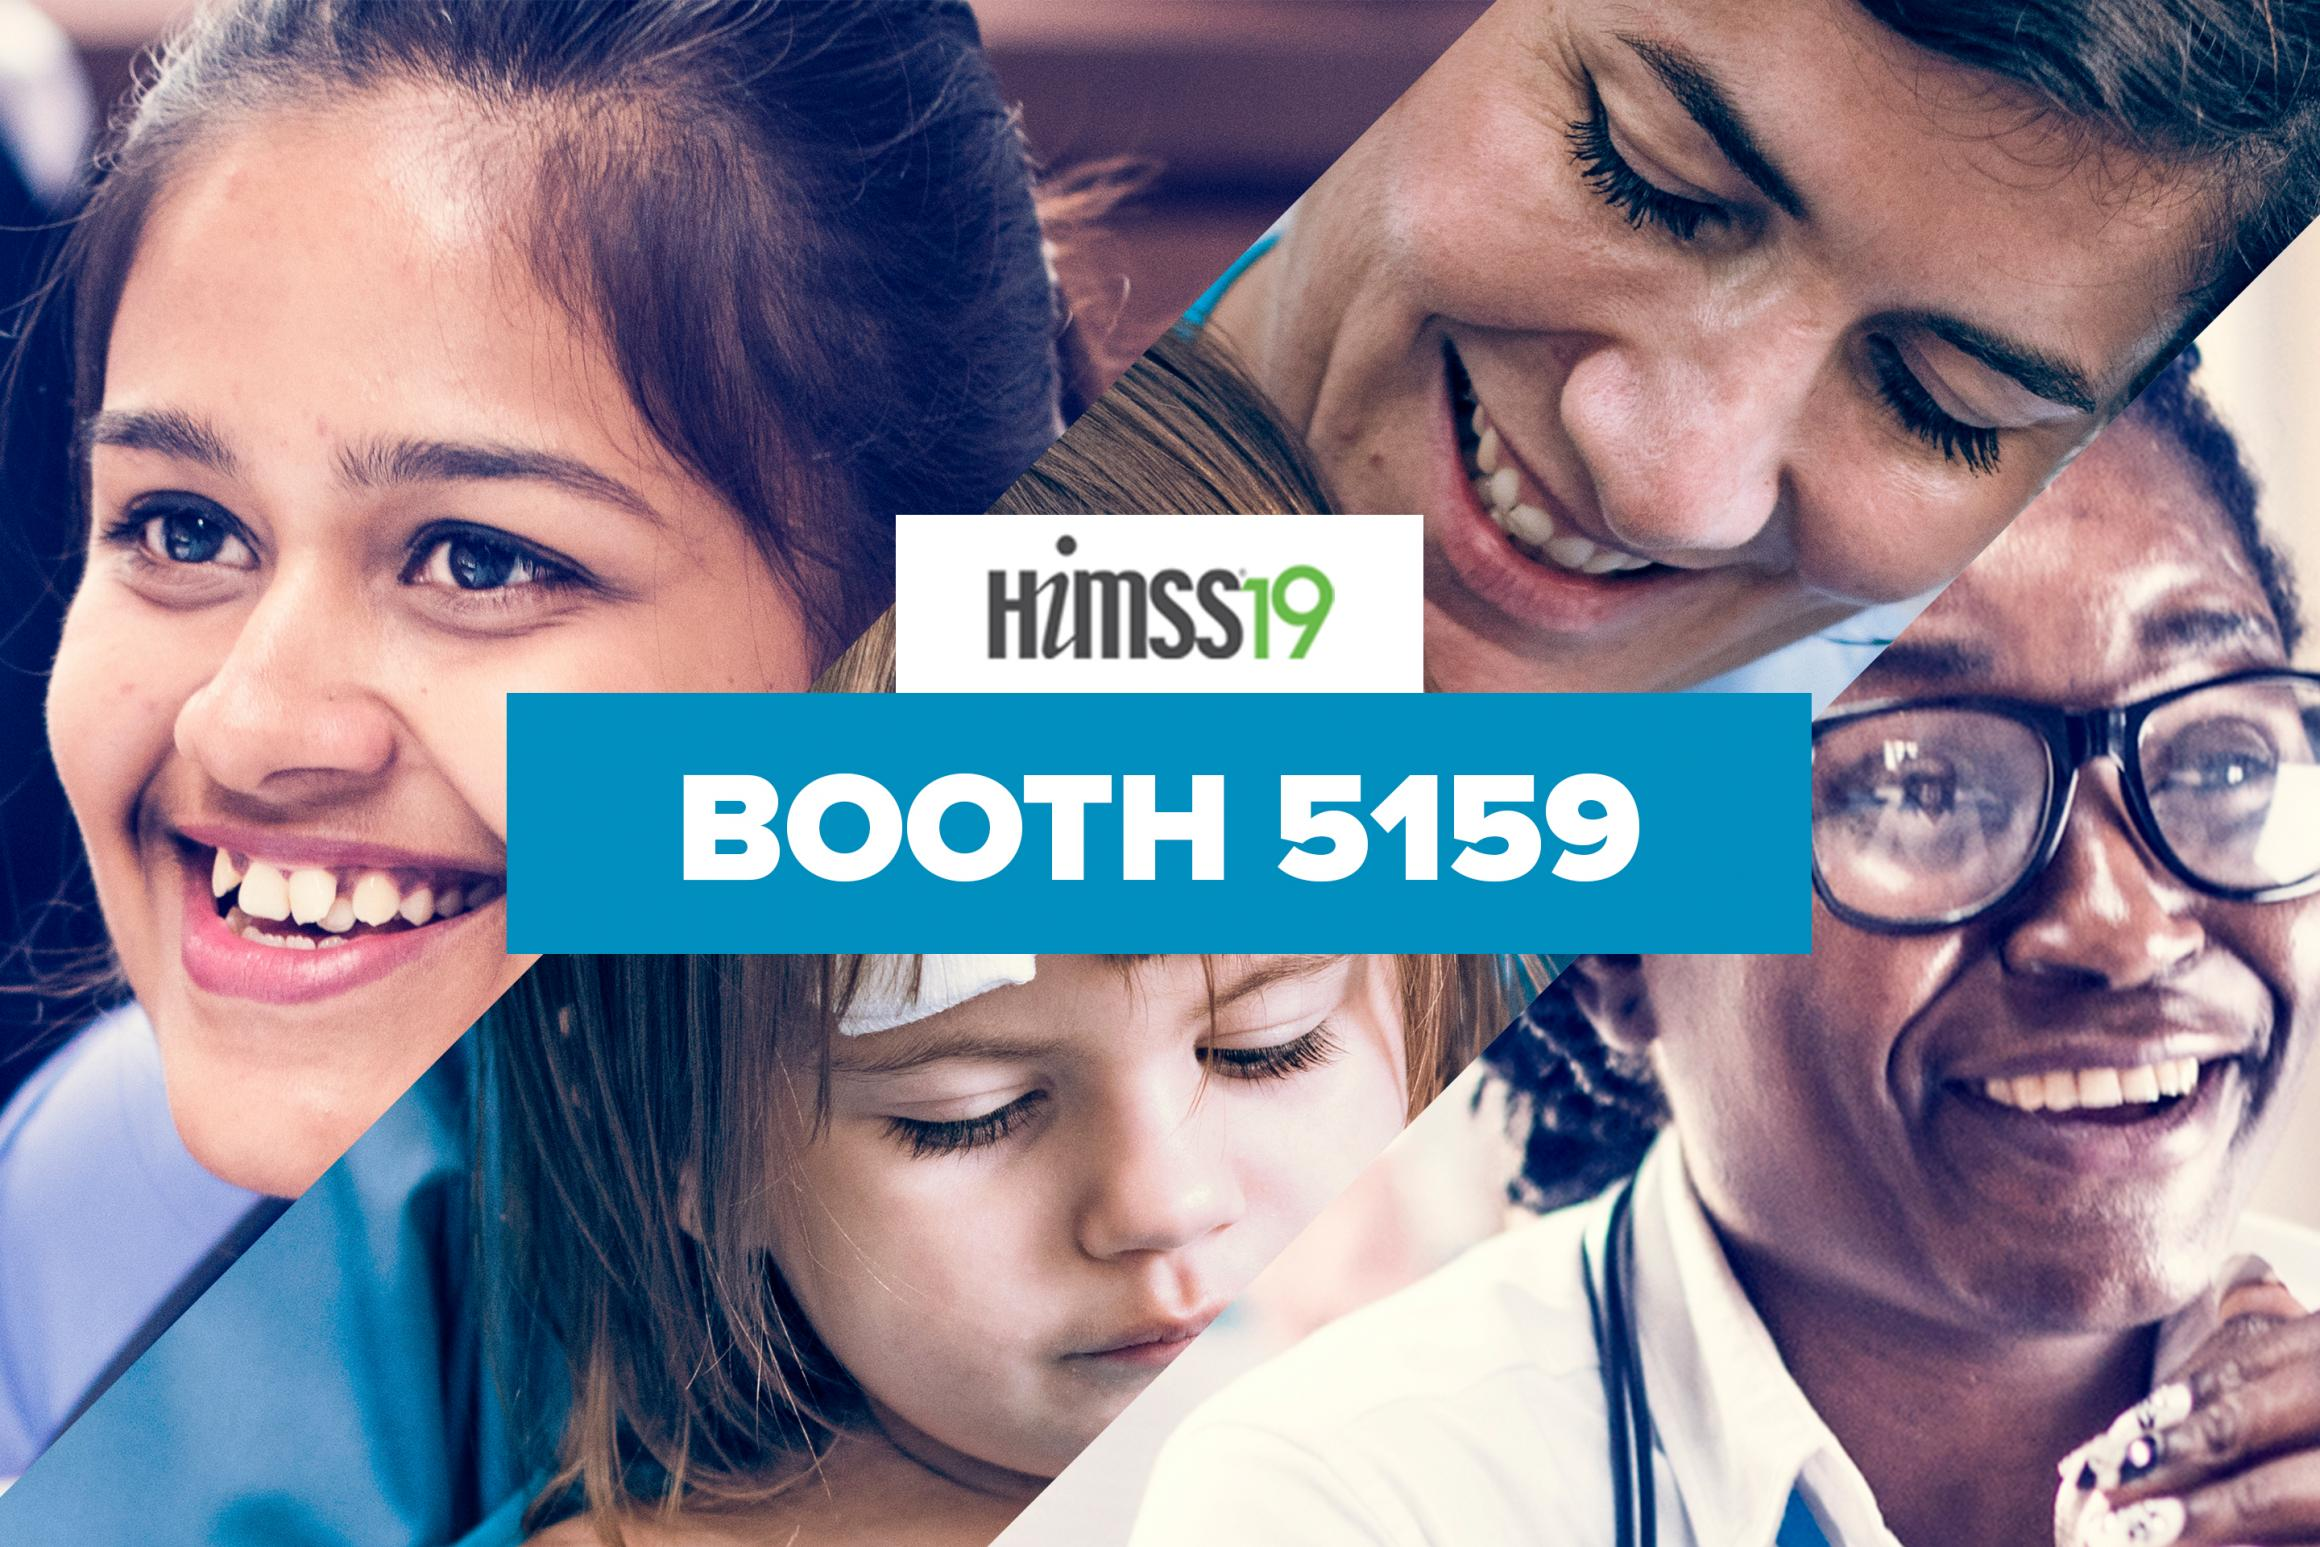 Join us at booth 5159 at HIMSS19